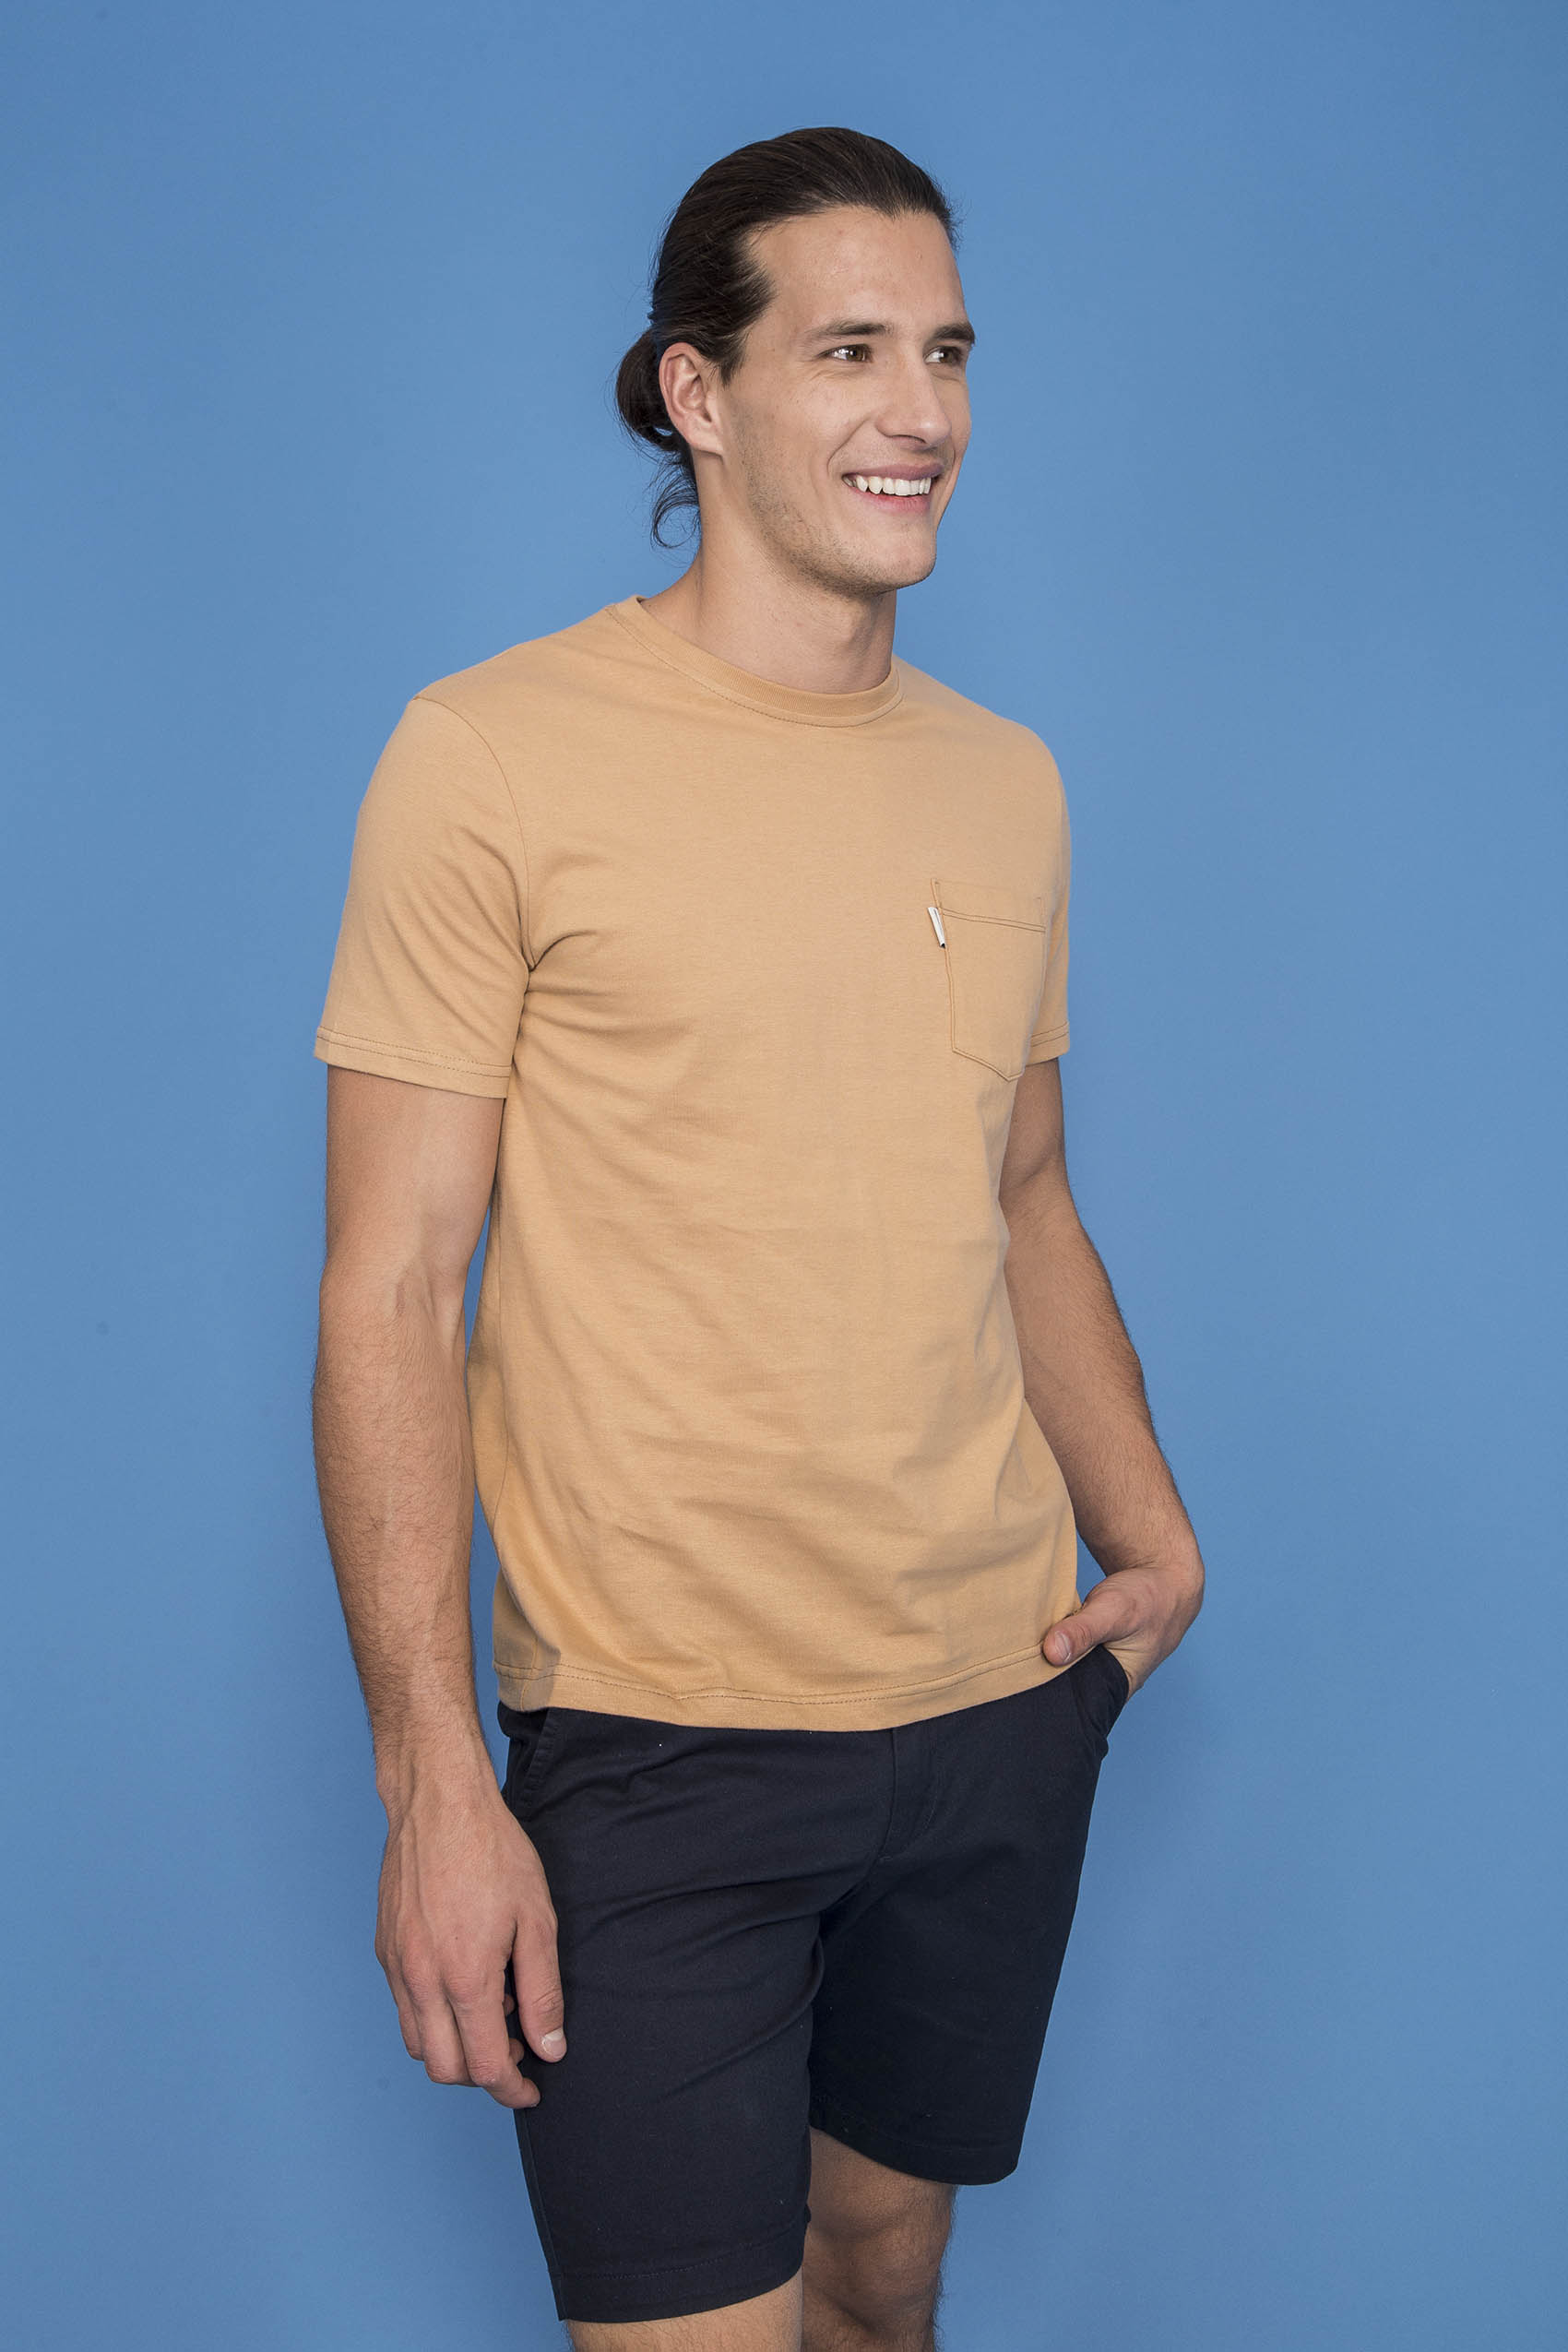 penguin_ss-jersey-pocket-tee_23-03-2021__picture-17037